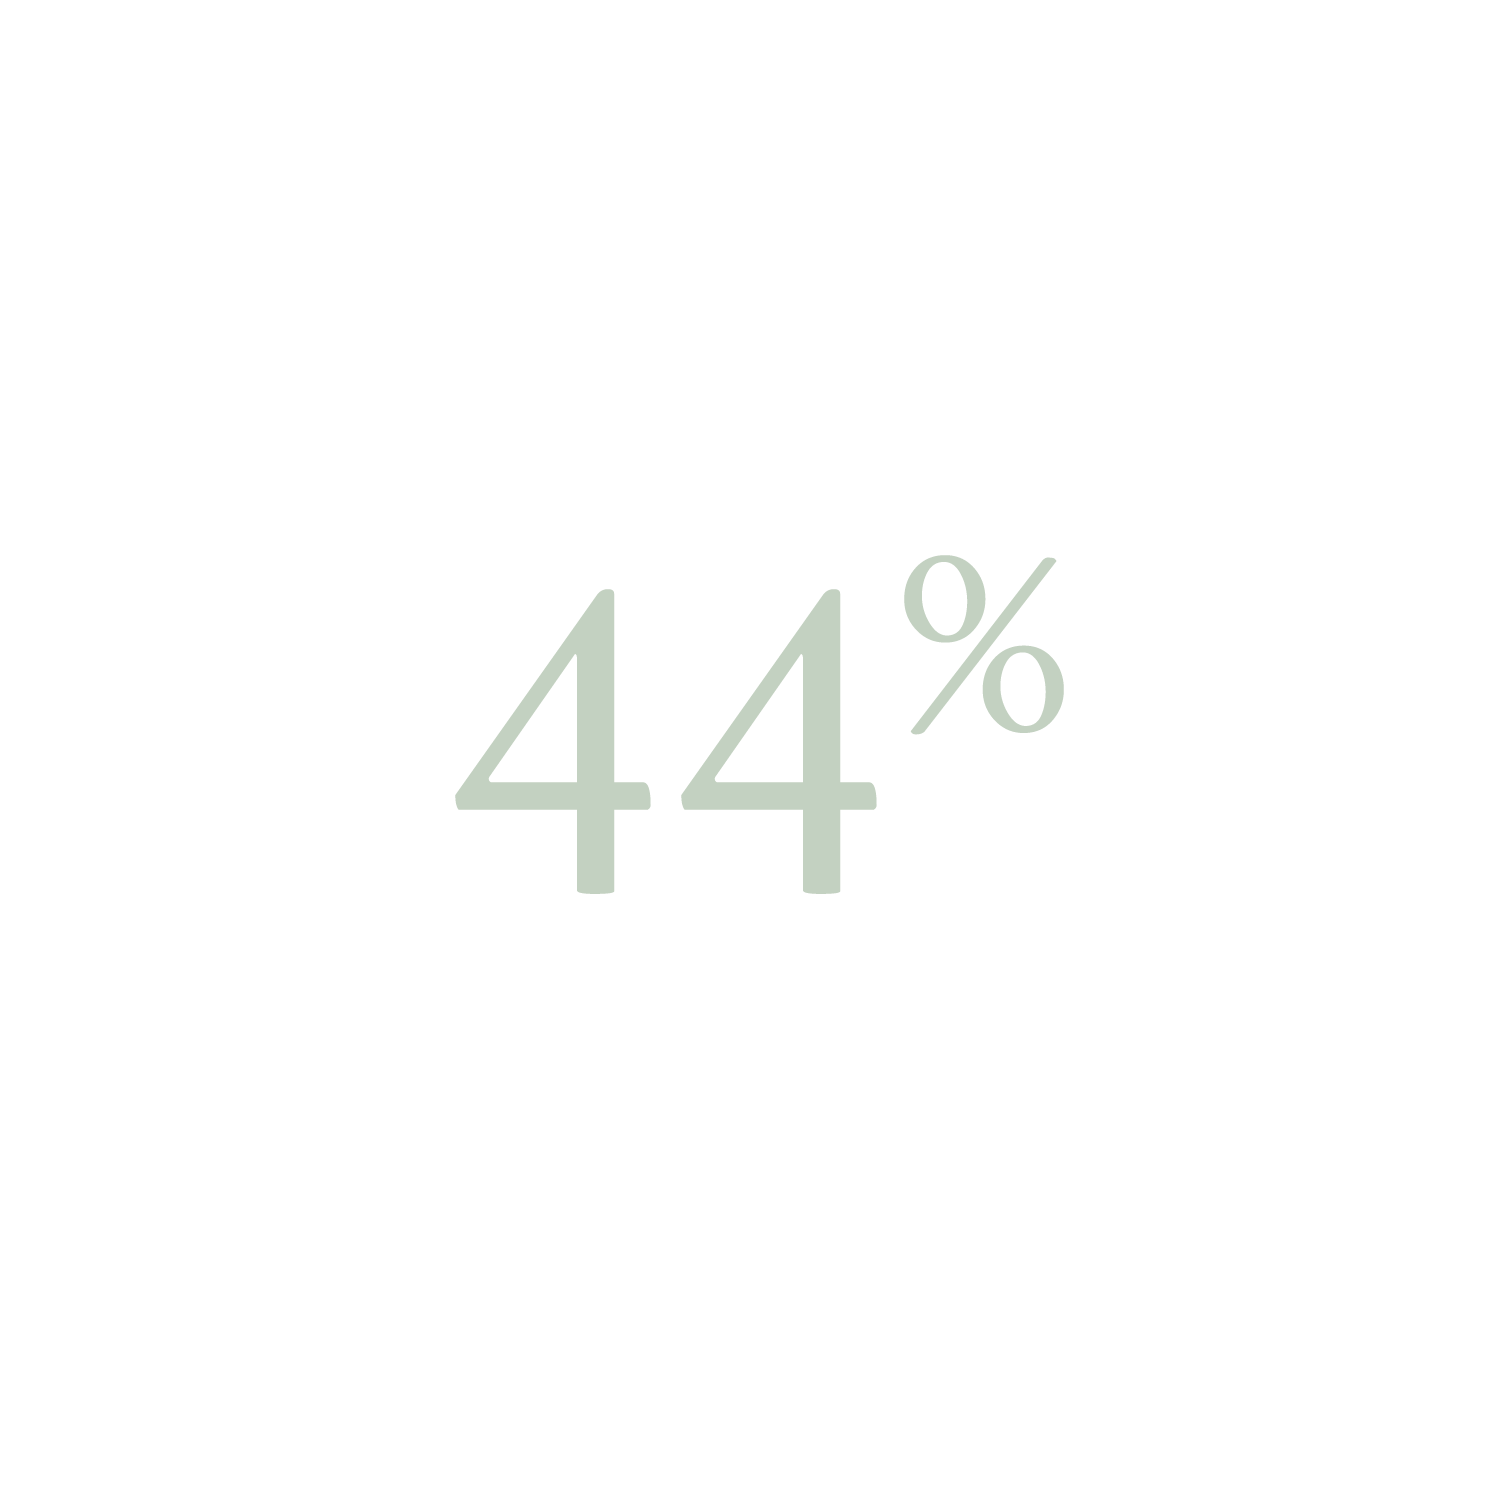 Percent of plastic packaging made of recycled materials Davines